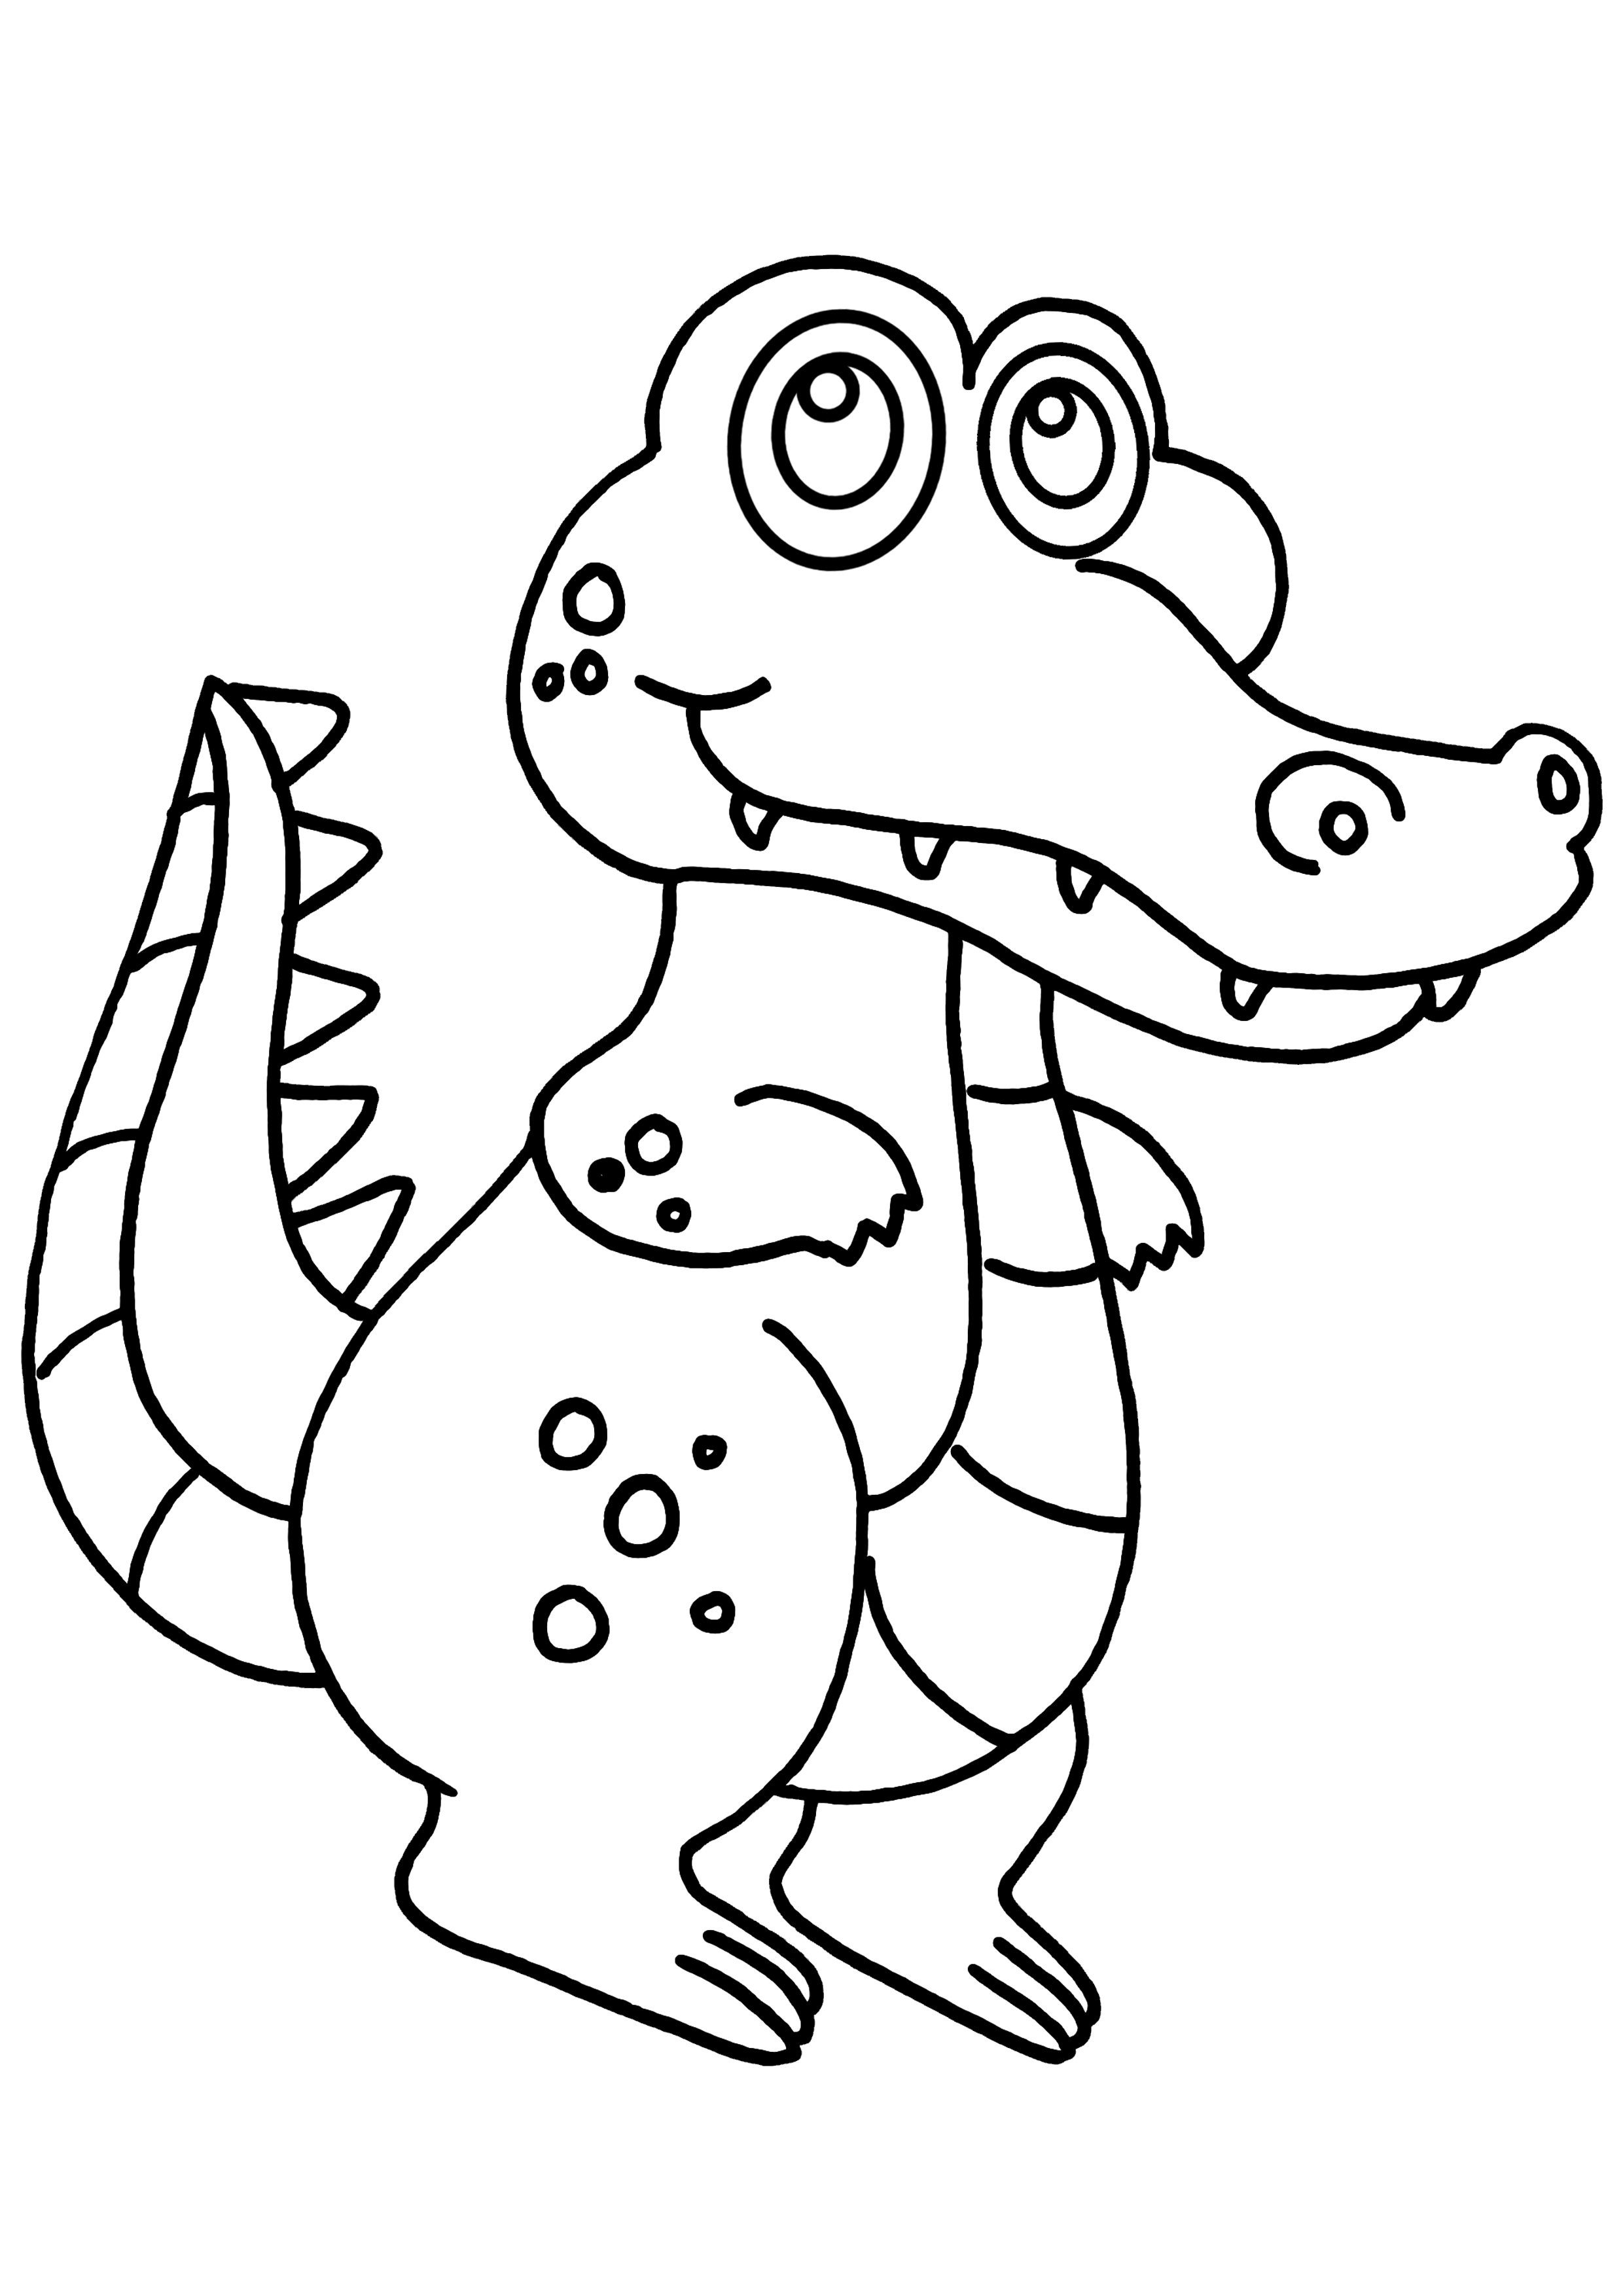 alligator coloring pages - coloriage crocodile marrant